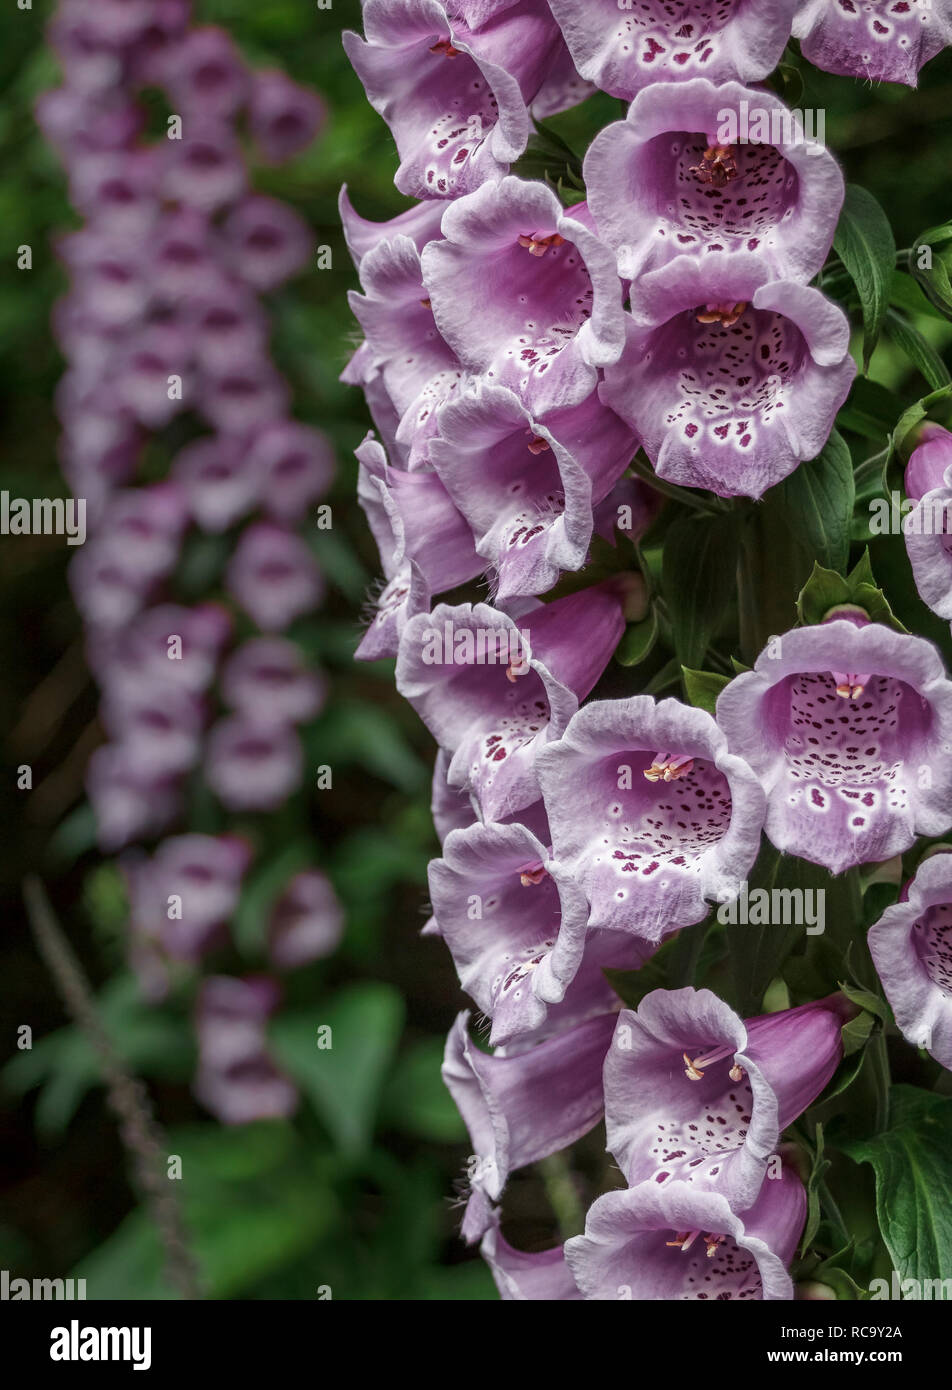 Foreground detail of flowers of a common foxglove (Digitalis purpurea), with another foxglove in the blurred background (vertical, natural light). - Stock Image